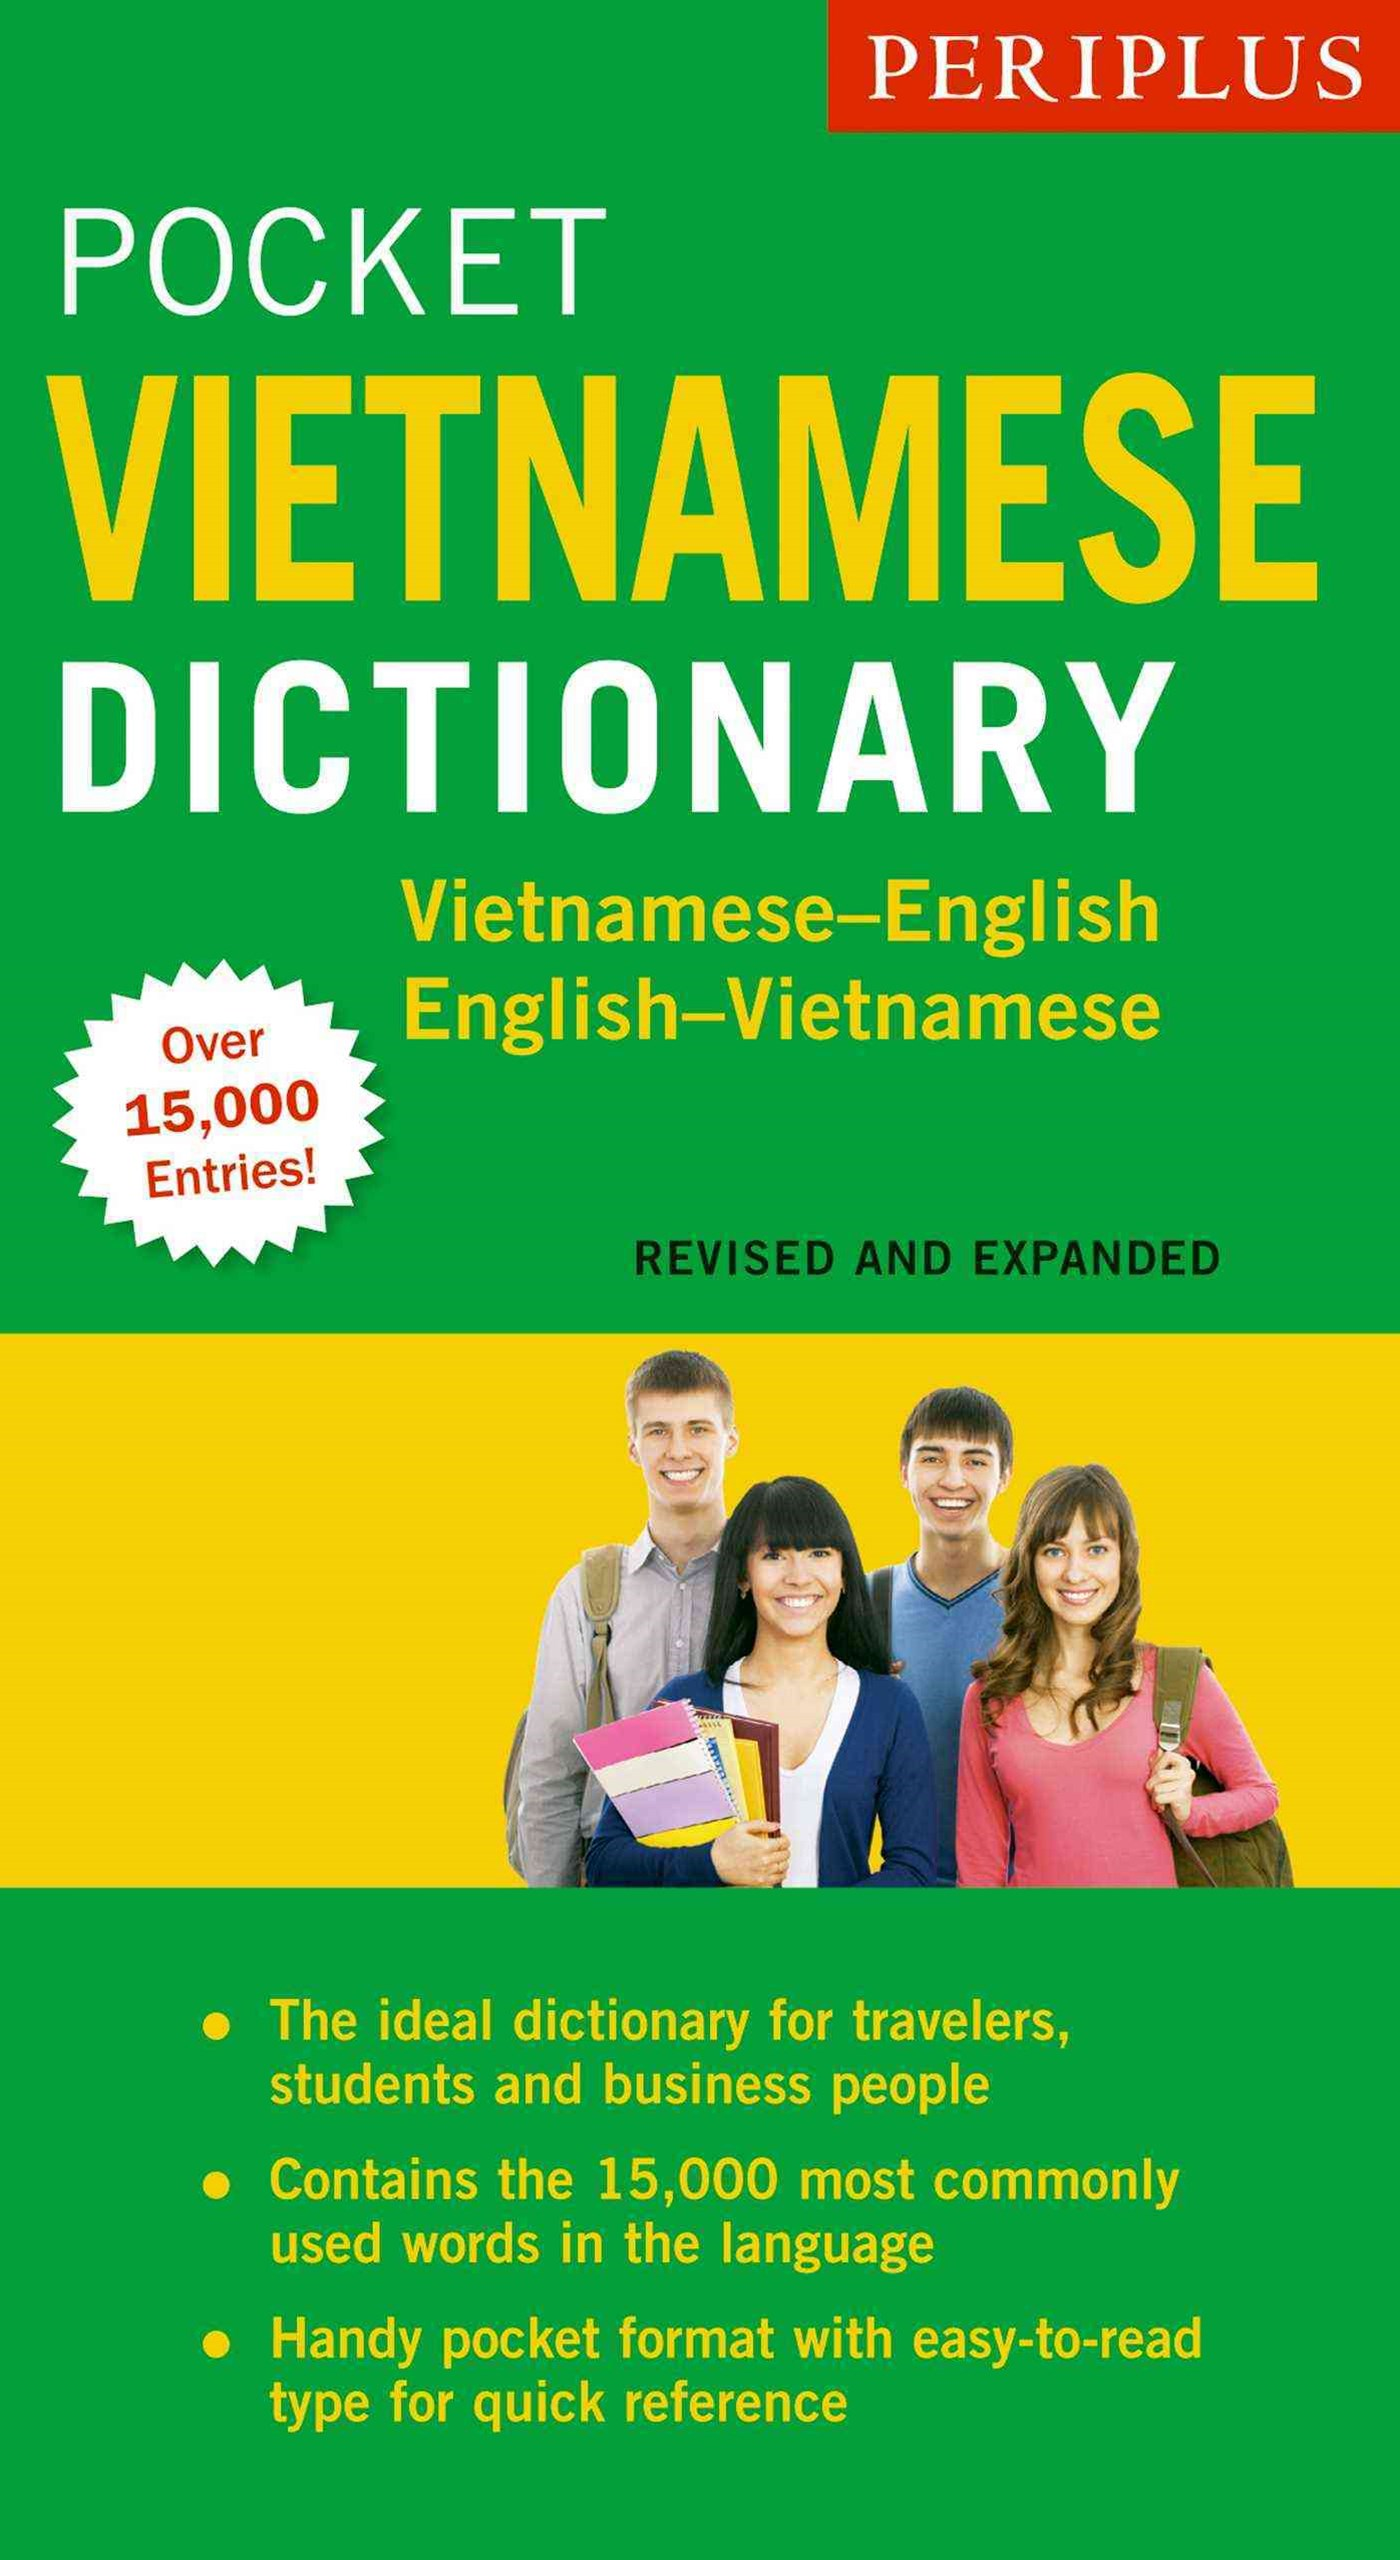 Periplus Pocket Vietnamese Dictionary